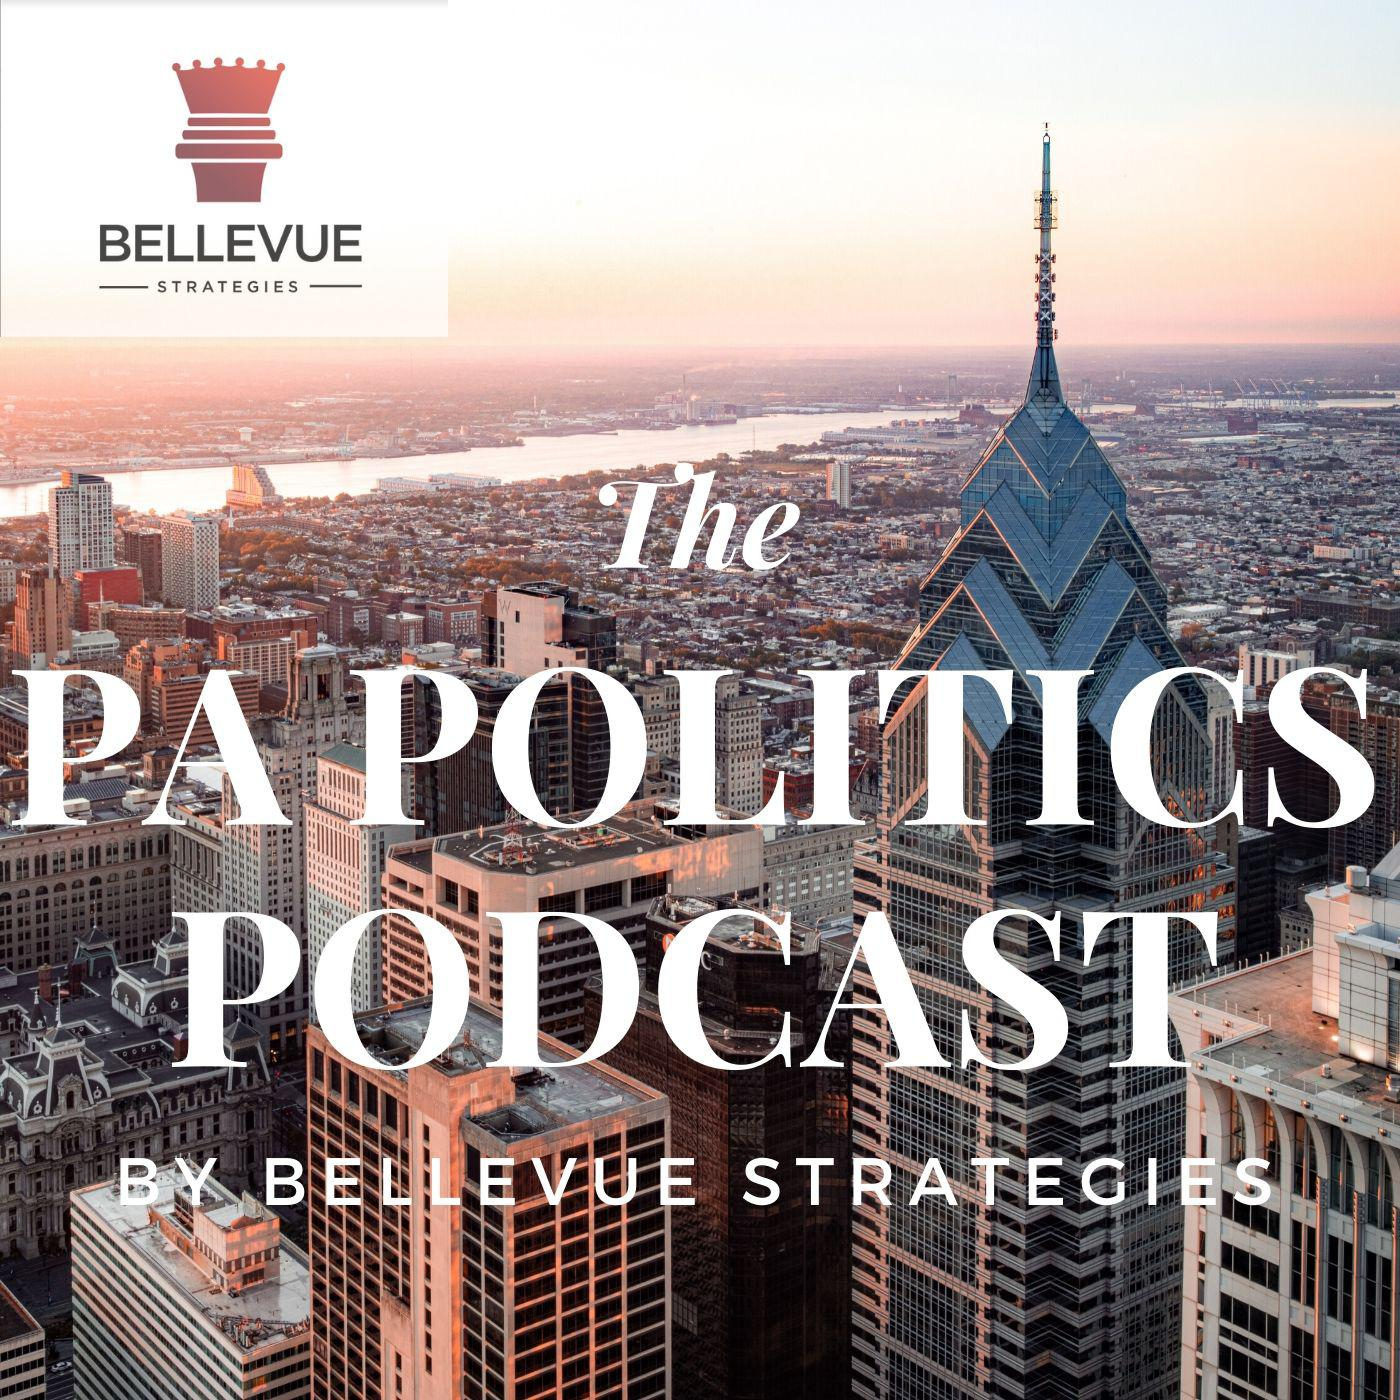 The PA Politics Podcast: Episode 17 - The Alliance of Community Service Providers